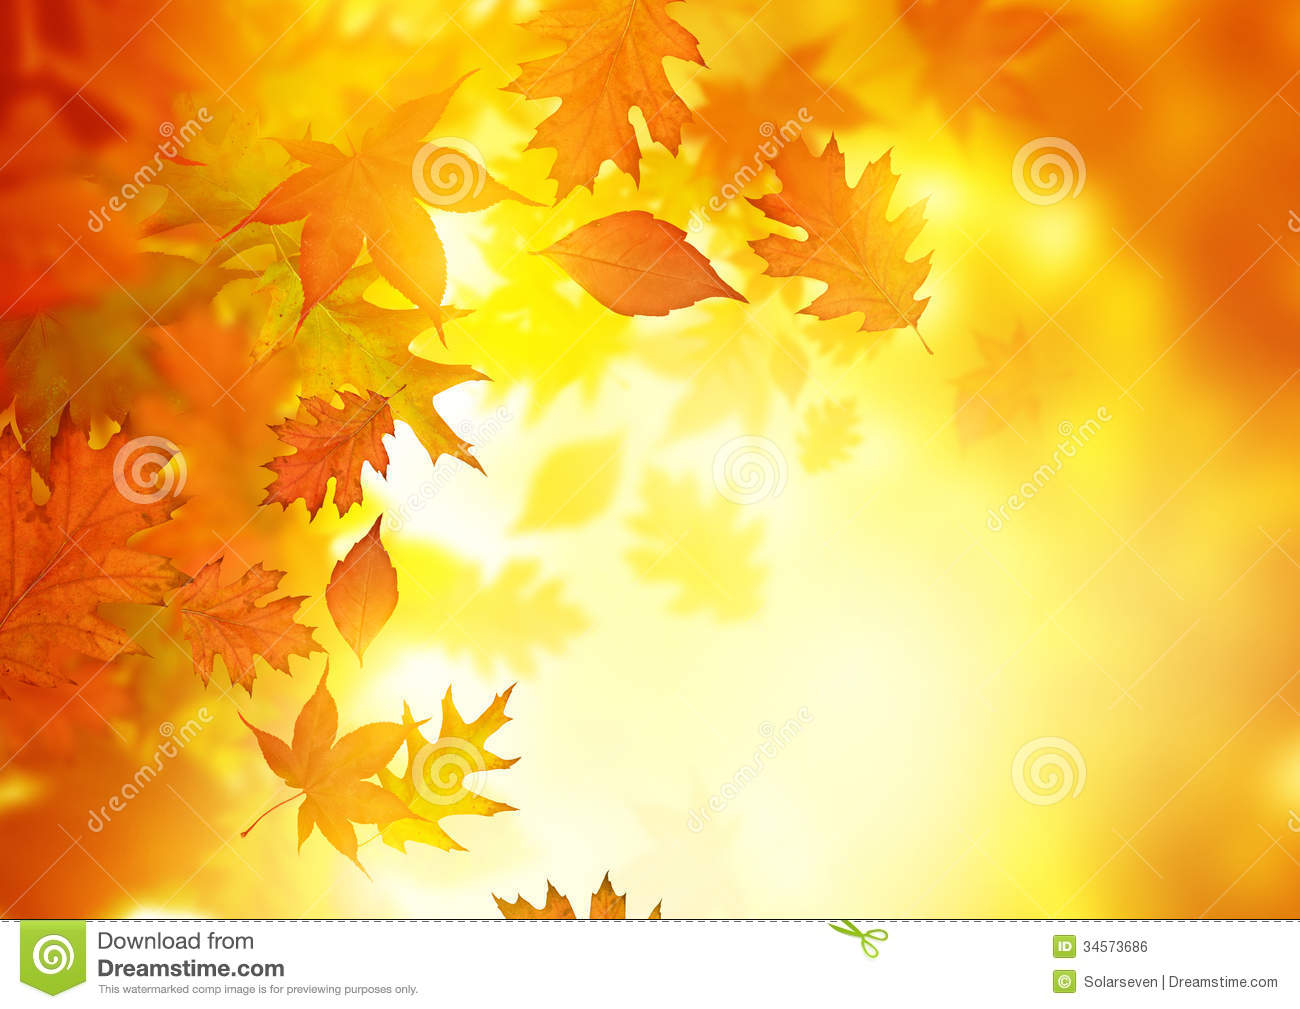 Fall Leaves Clip Art Wallpaper Autumn Falling Leaves Stock Photo Image Of Pure Natural